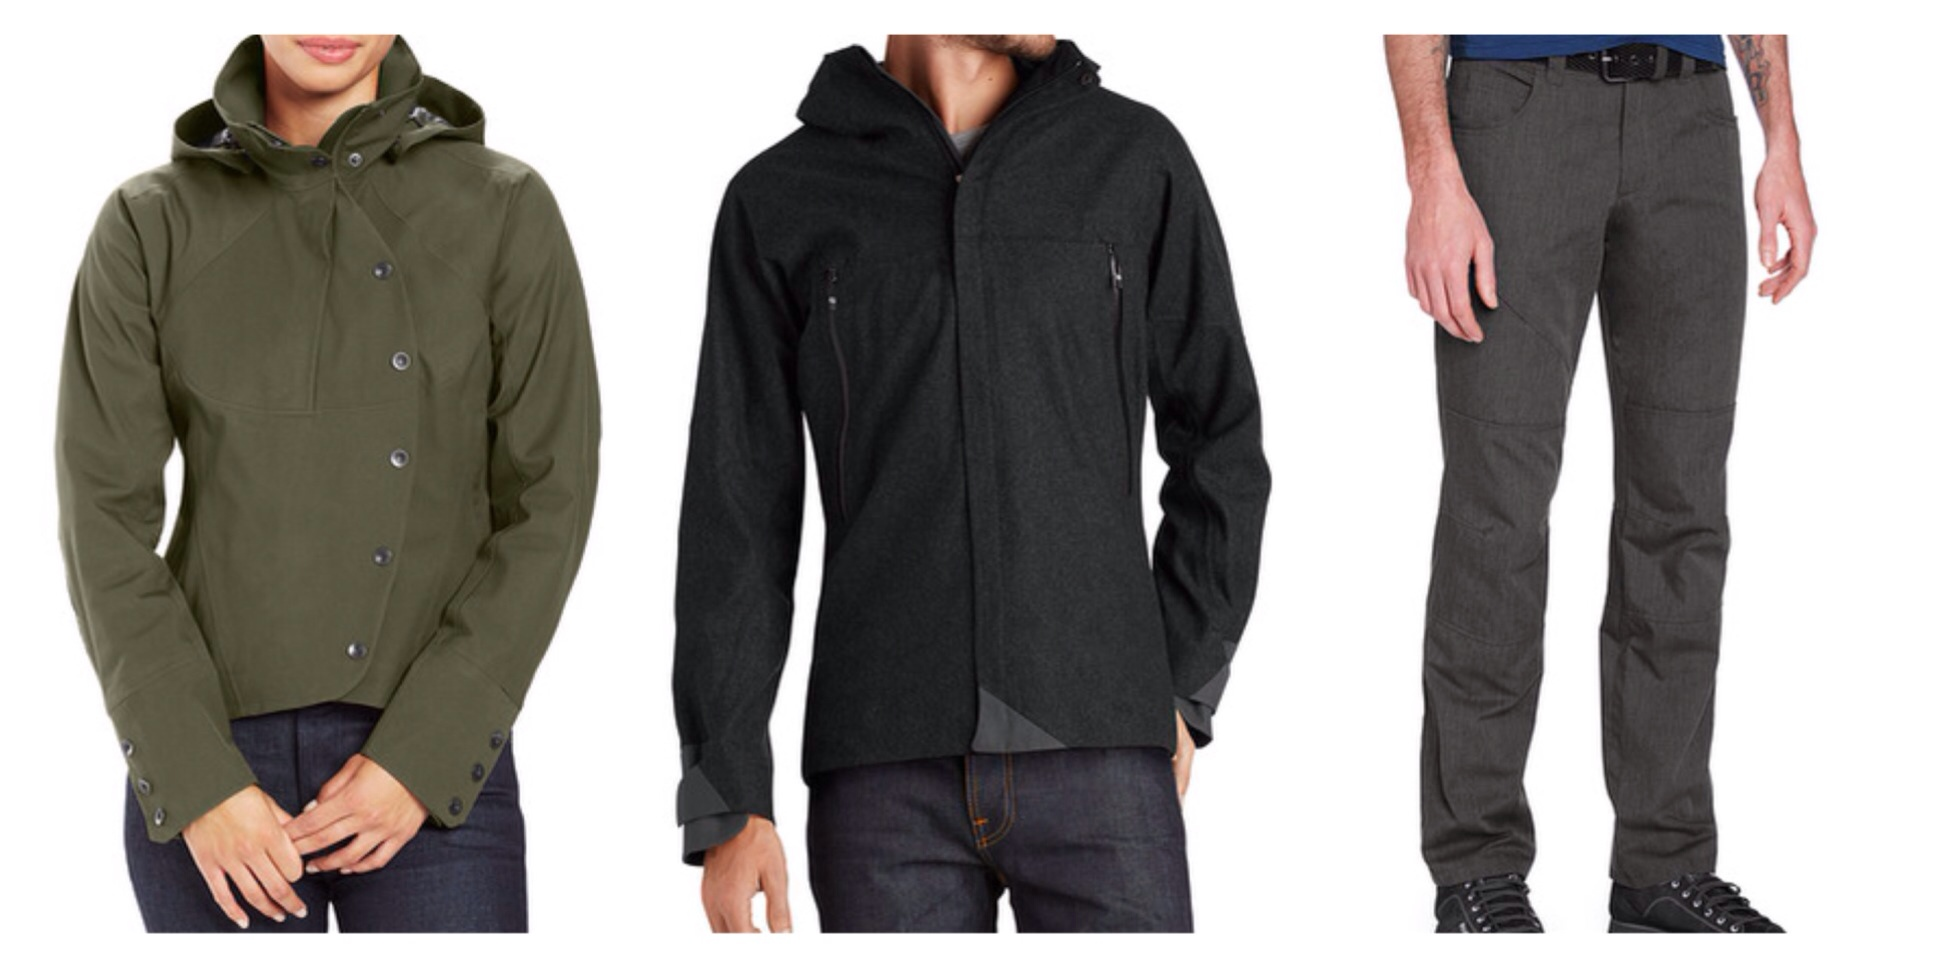 Clothing Company List: Stylish Technical Outdoor Gear - CyclingAbout